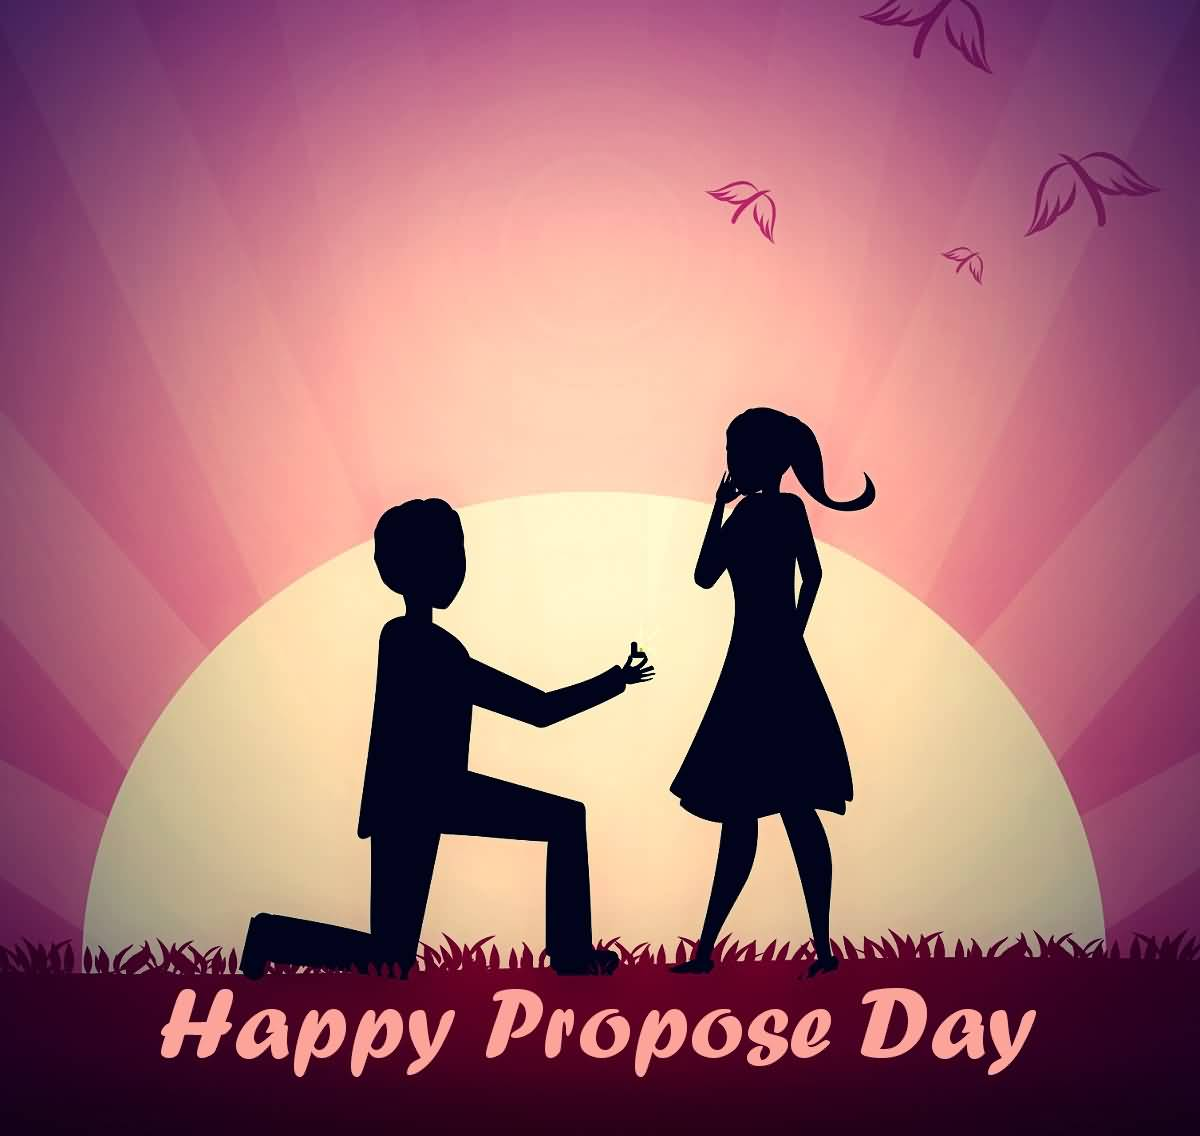 40 most beautiful propose day 2017 greeting cards happy propose day 2017 greeting card kristyandbryce Images